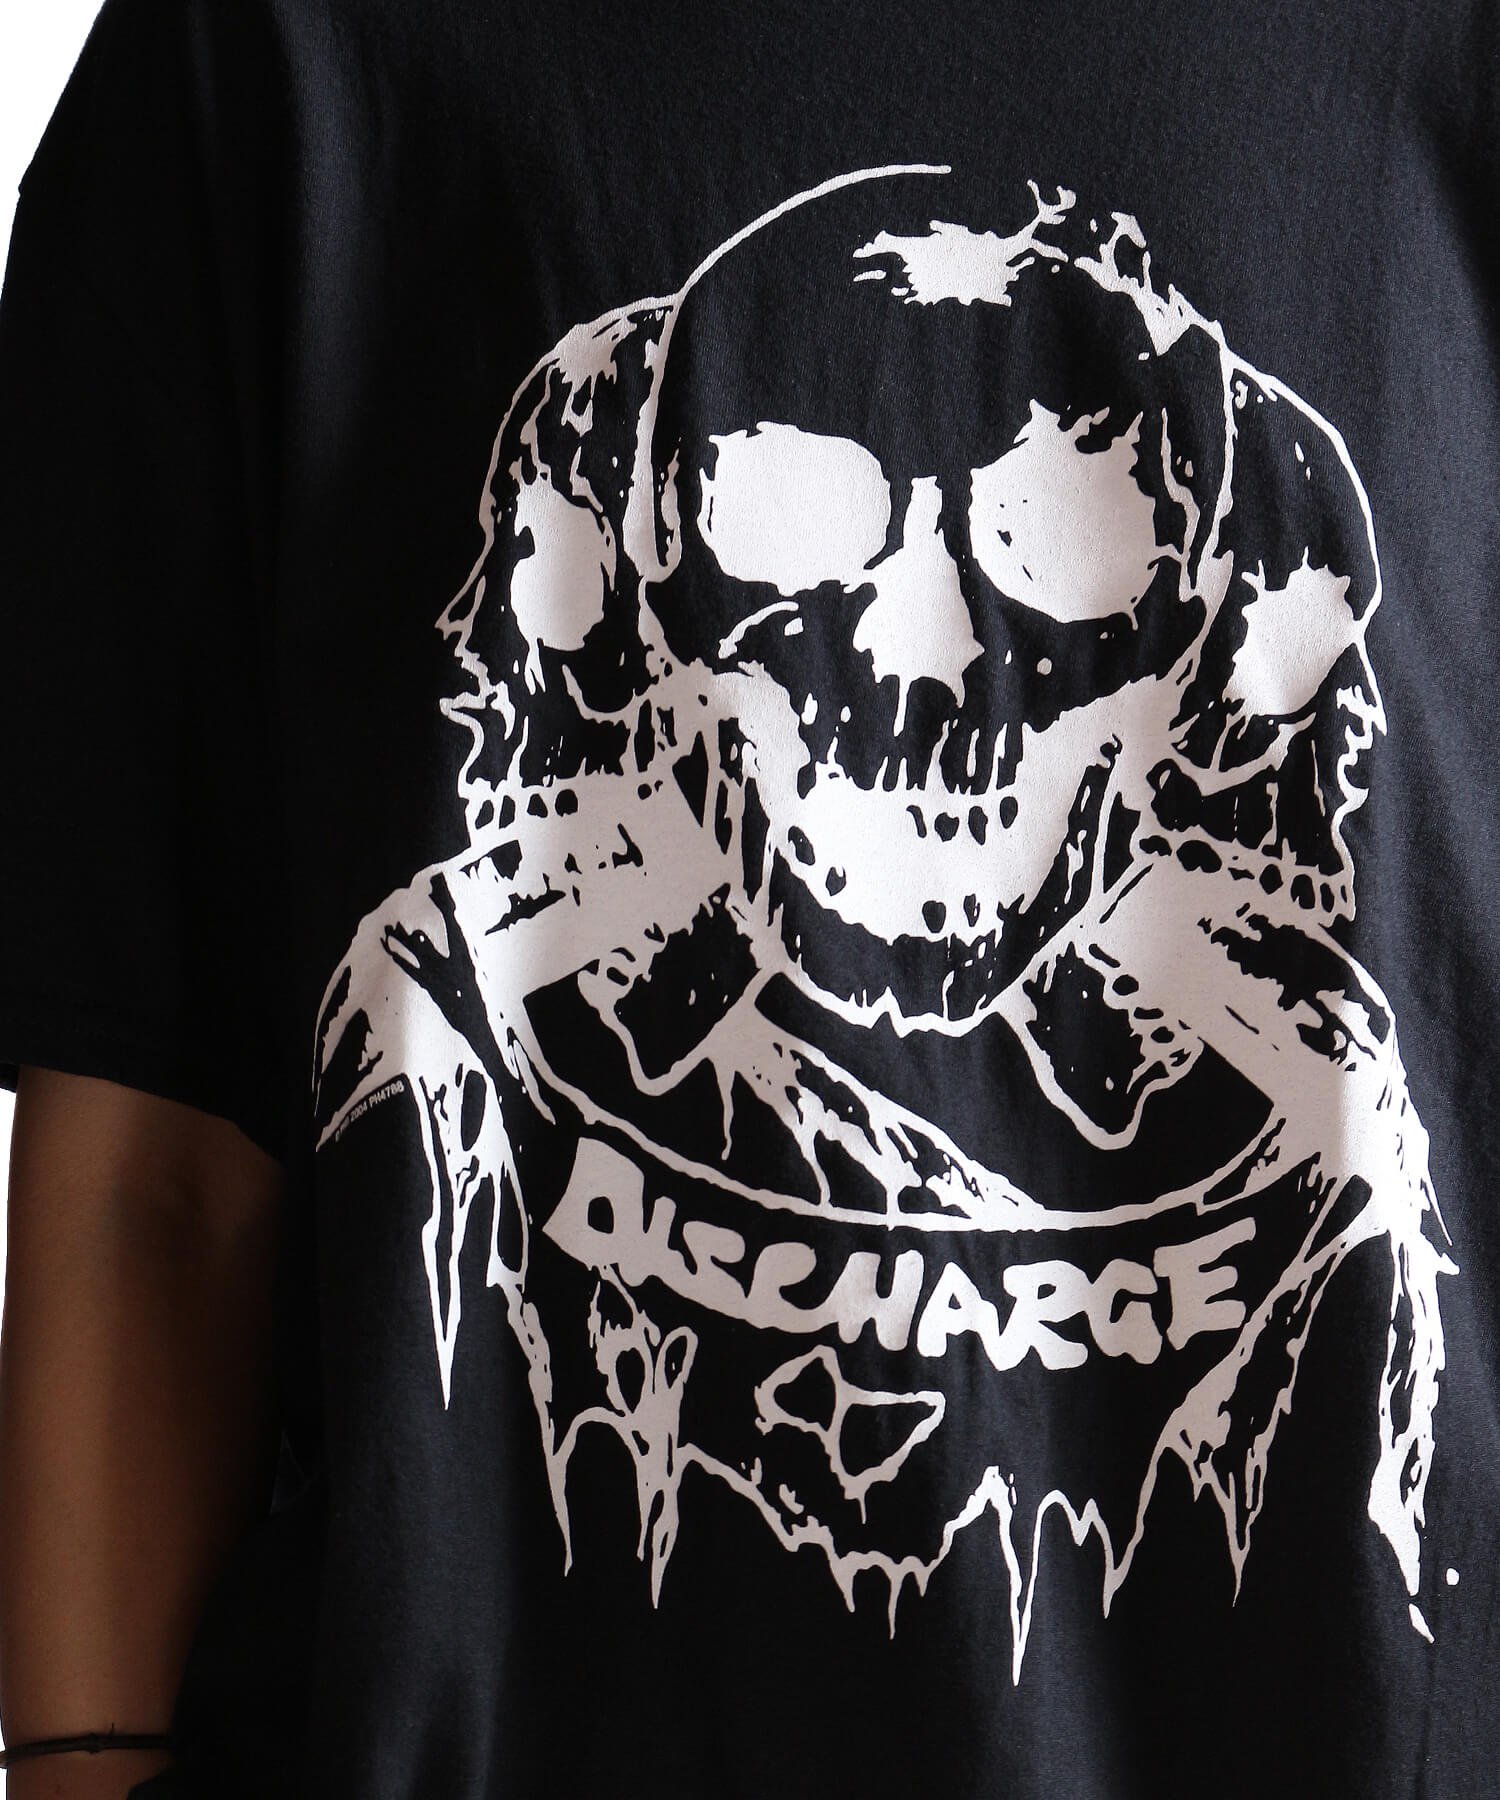 Official Artist Goods / バンドTなど |DISCHARGE / ディスチャージ:BORN TO DIE T-SHIRT (BLACK/RED) 商品画像16